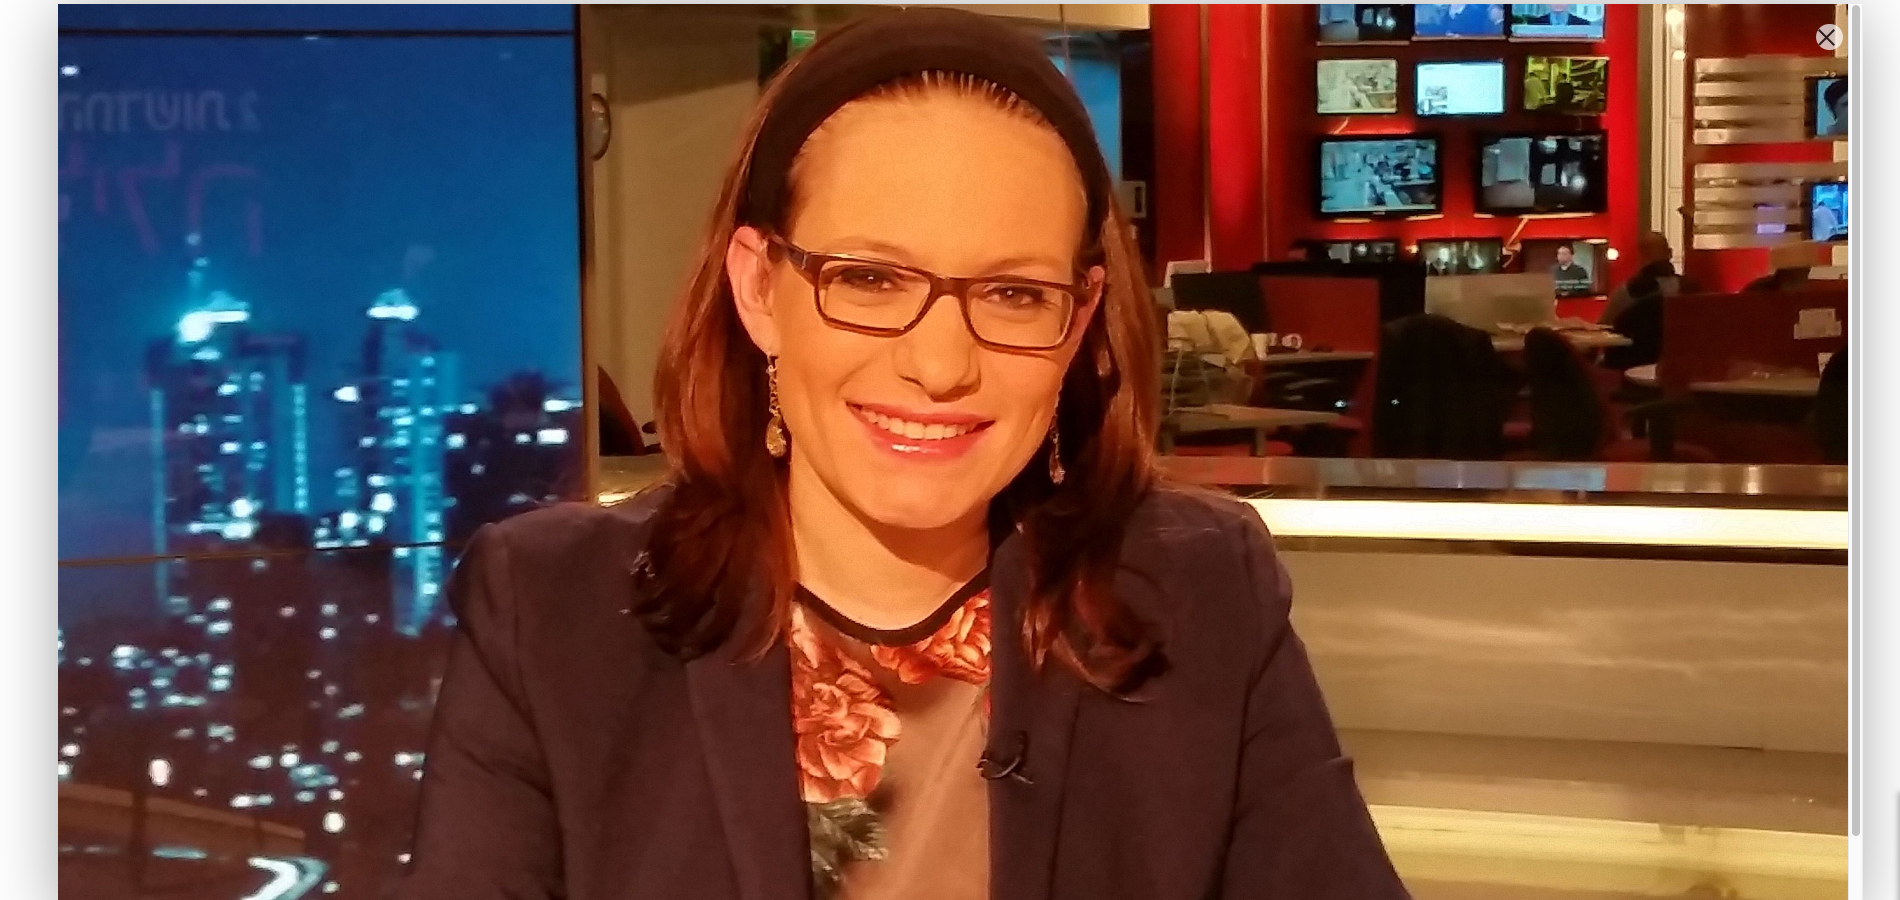 The Most Popular Israeli Female News Anchor is Haredi & Other Orthodox Jews in the News